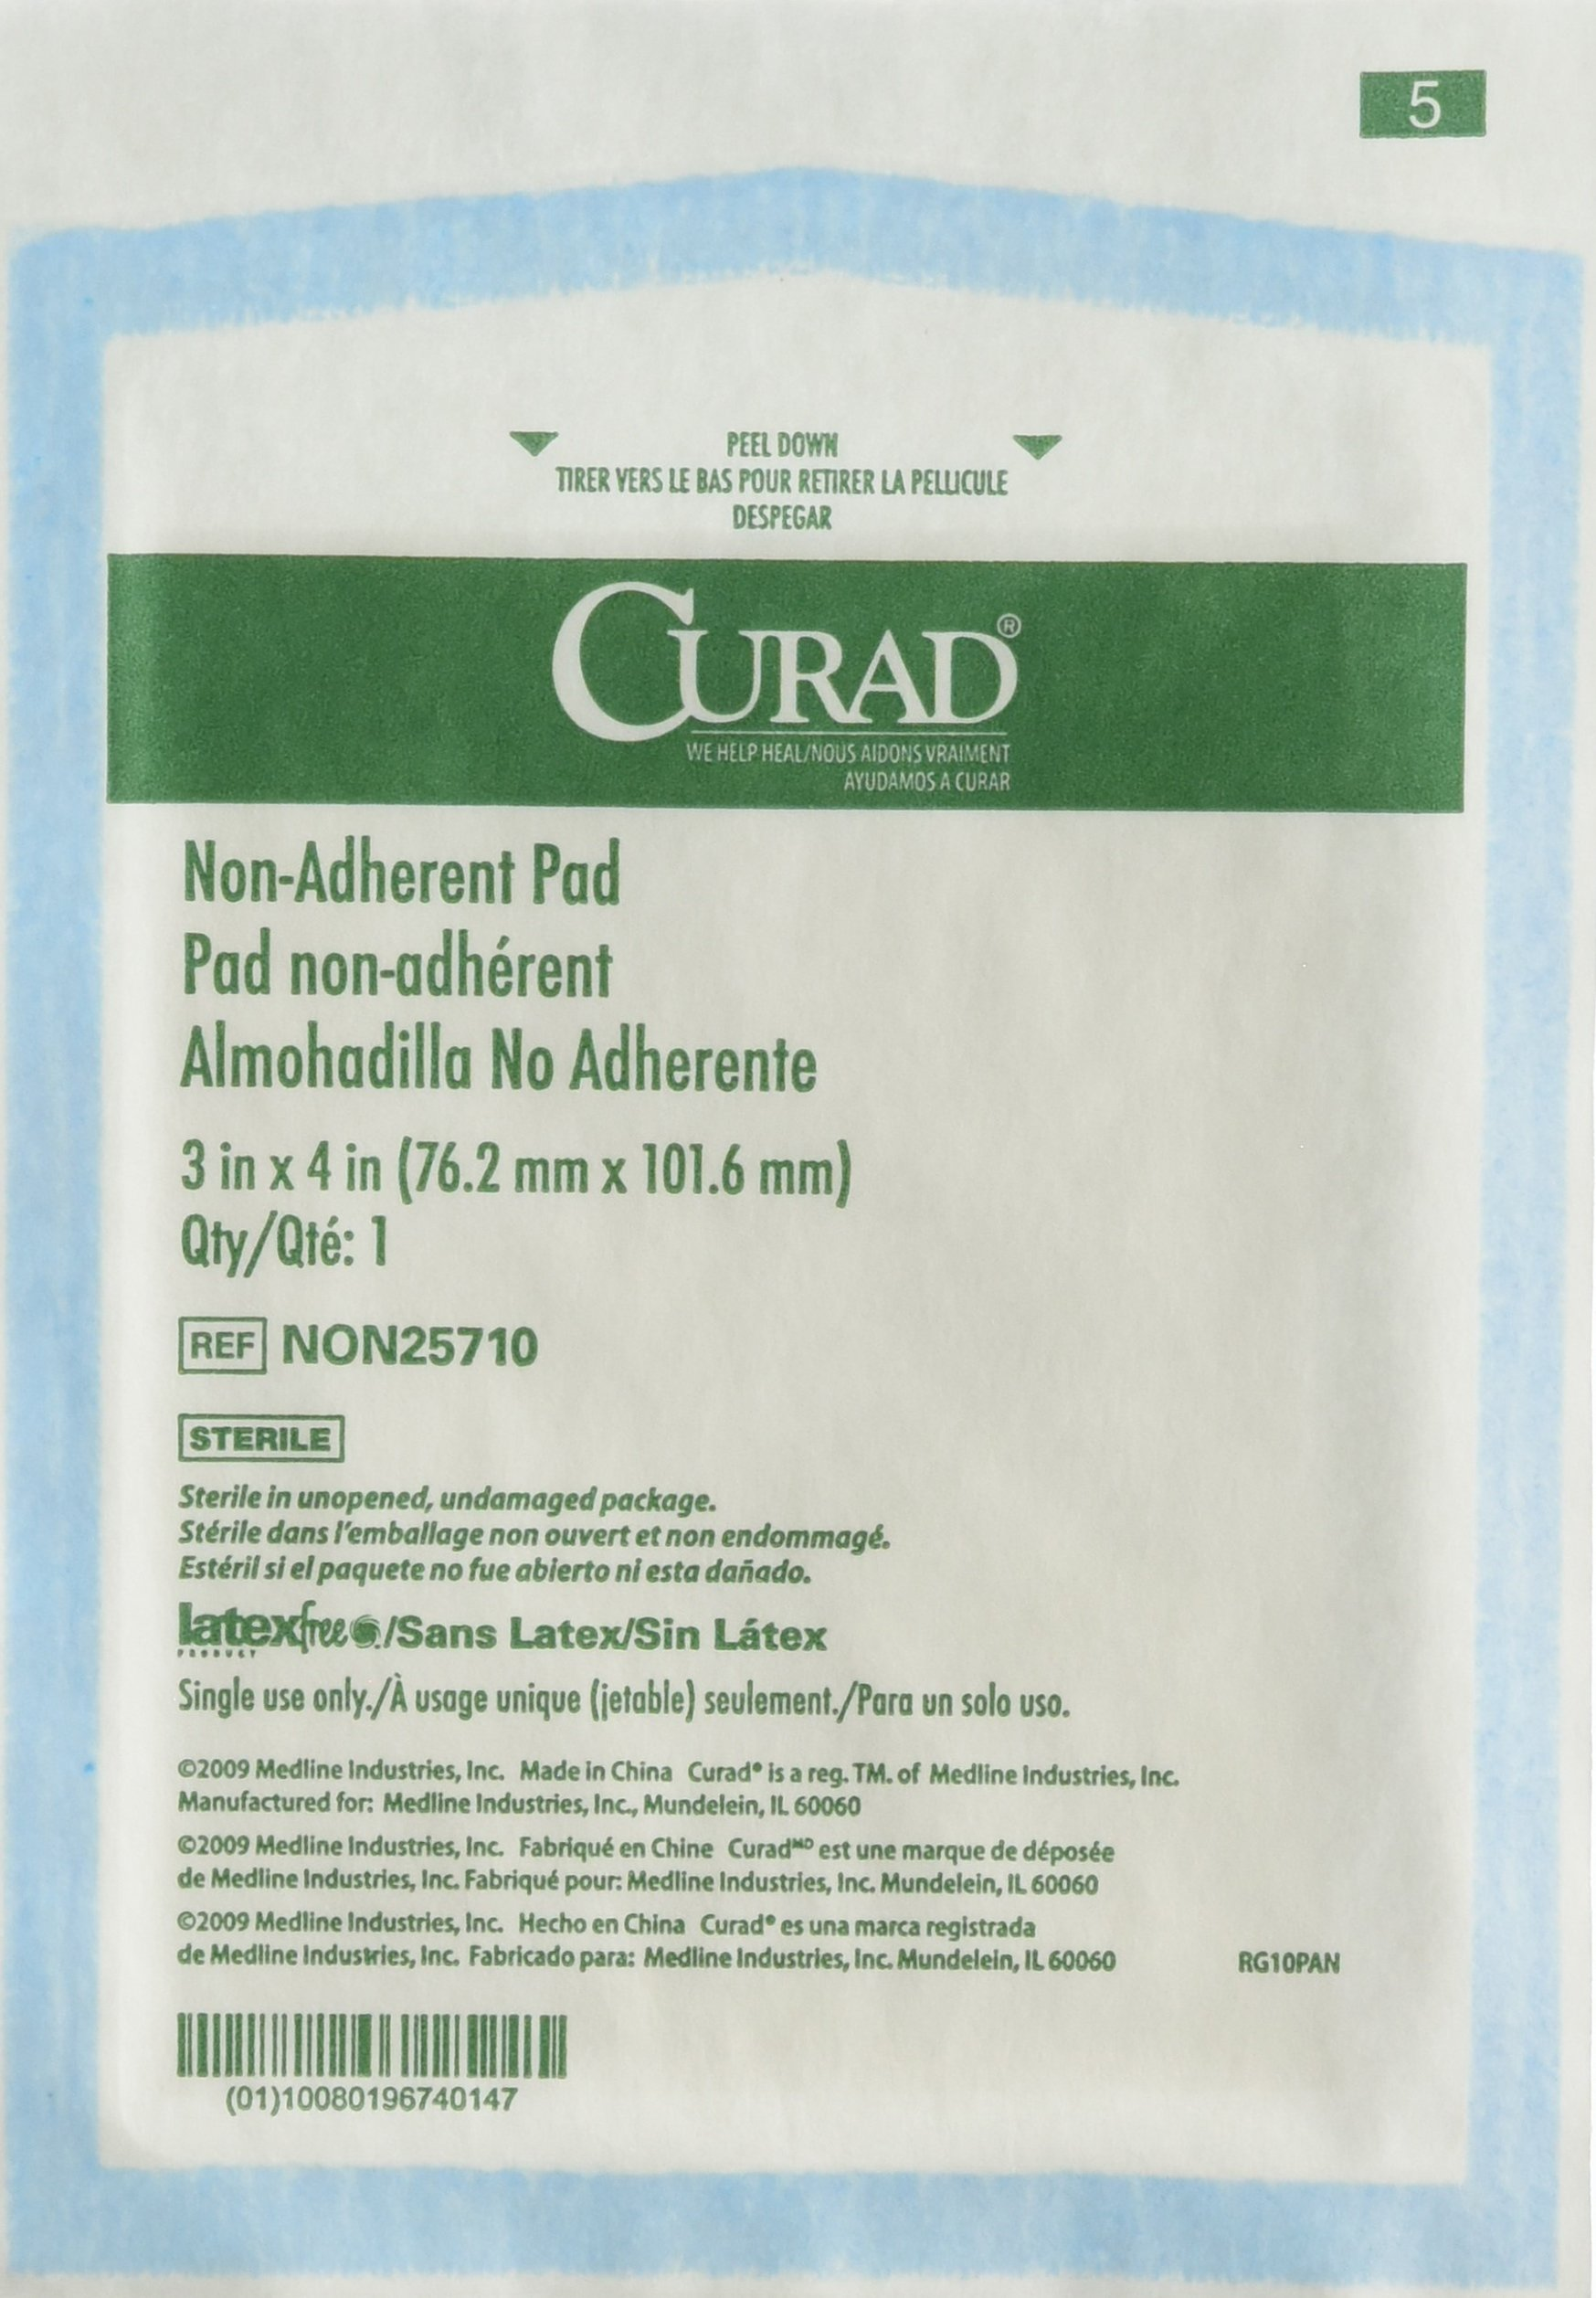 Curad Sterile Non-Adherent Pads (Pack of 100) for gentle wound dressing and absorption without sticking by Curad